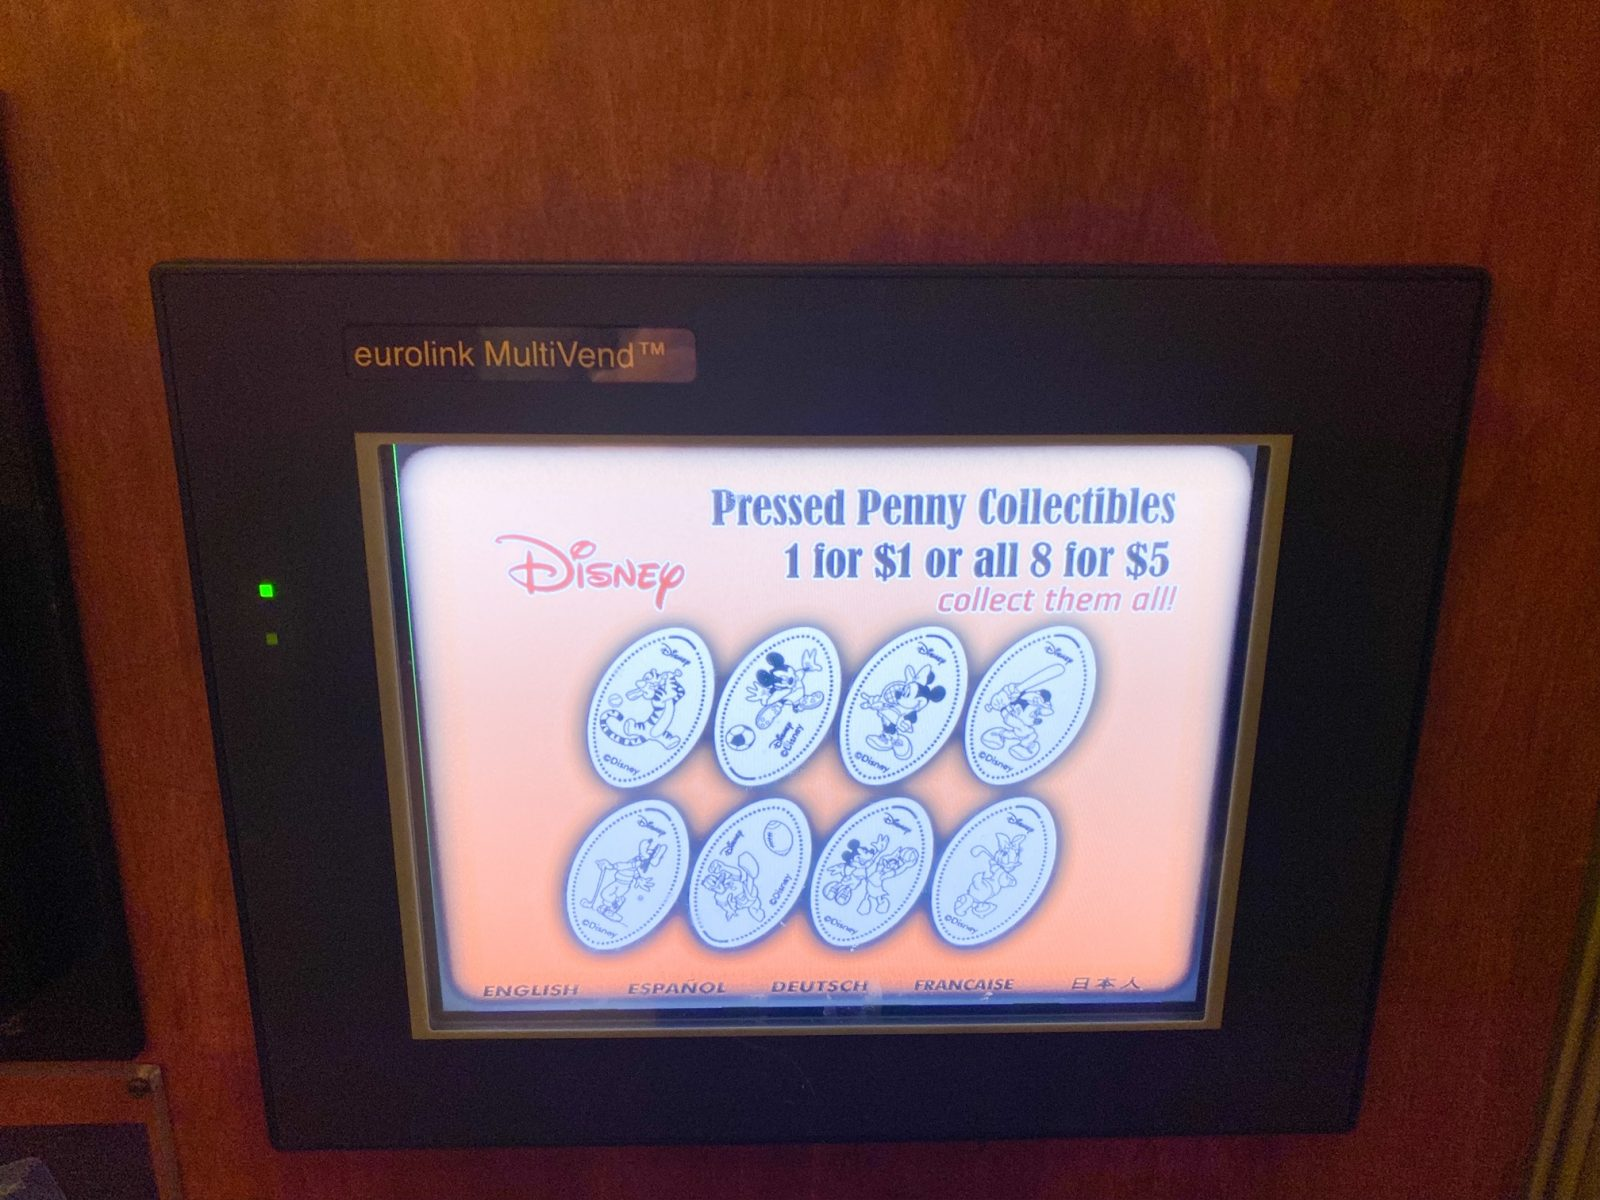 Disney Souvenirs Pressed Penny Machine Instructions and Cost